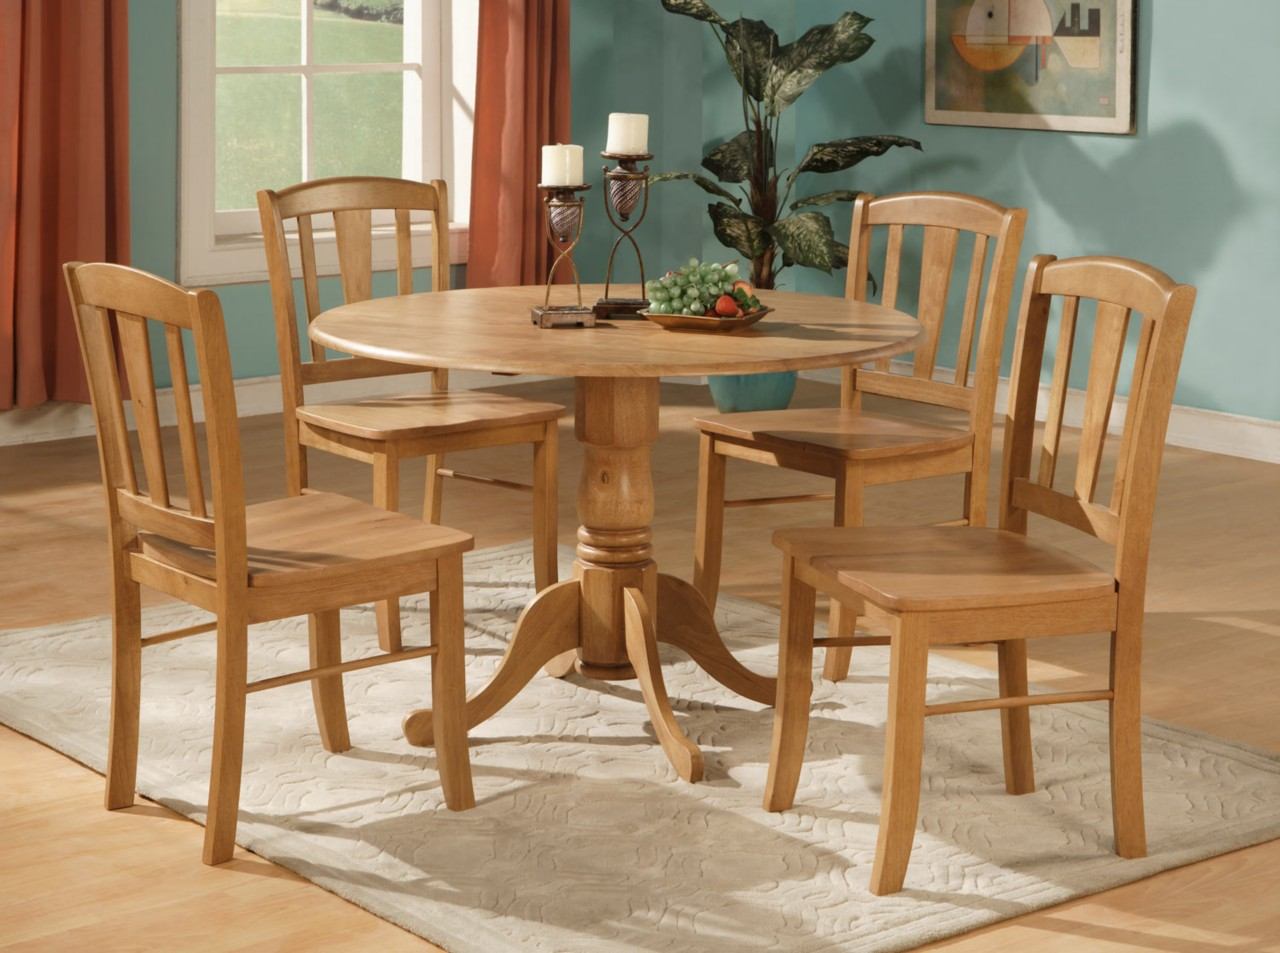 Small Round Kitchen Table. Small Round Kitchen Tables Kitchen ...